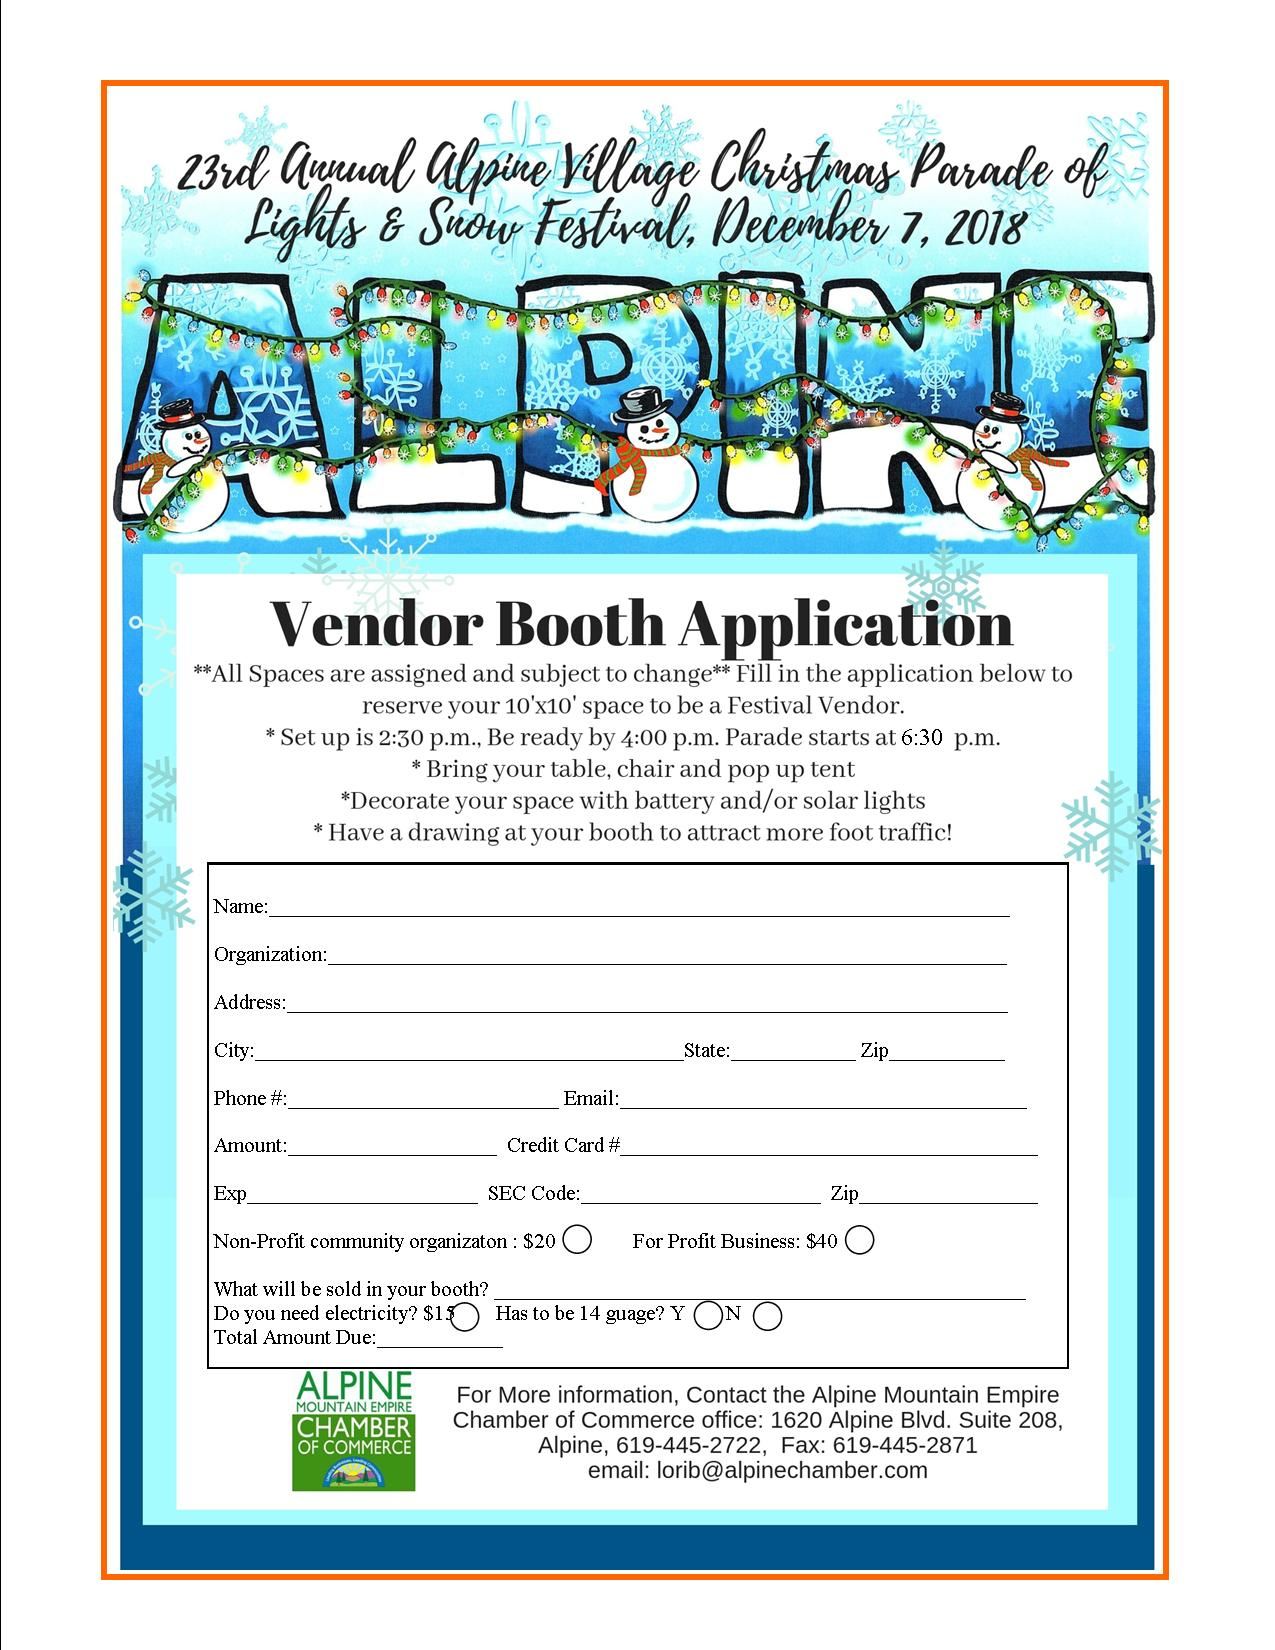 Vendor-application-new-Parade-and-Festival-of-lights-2018.jpg